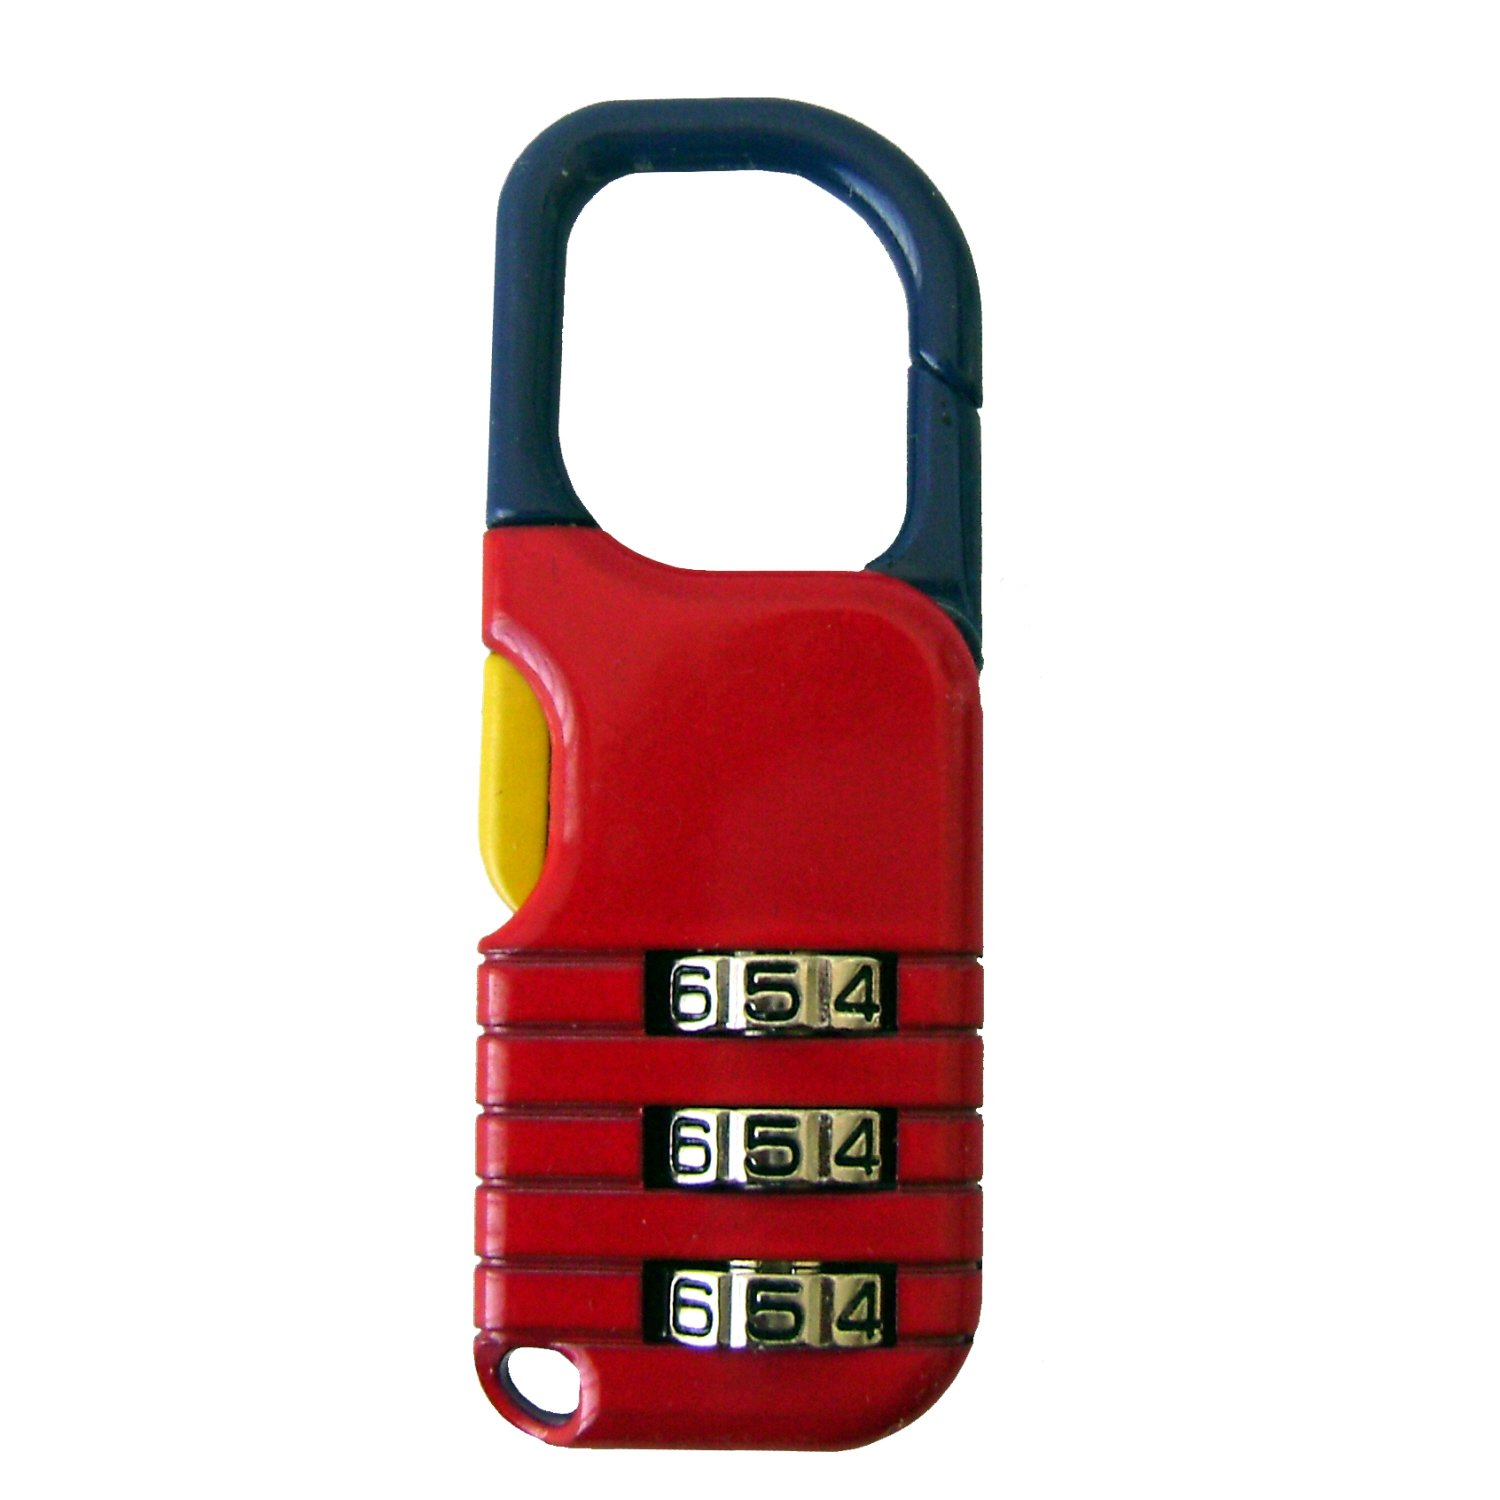 The Club UTL851 Backpack Combination Lock, Red